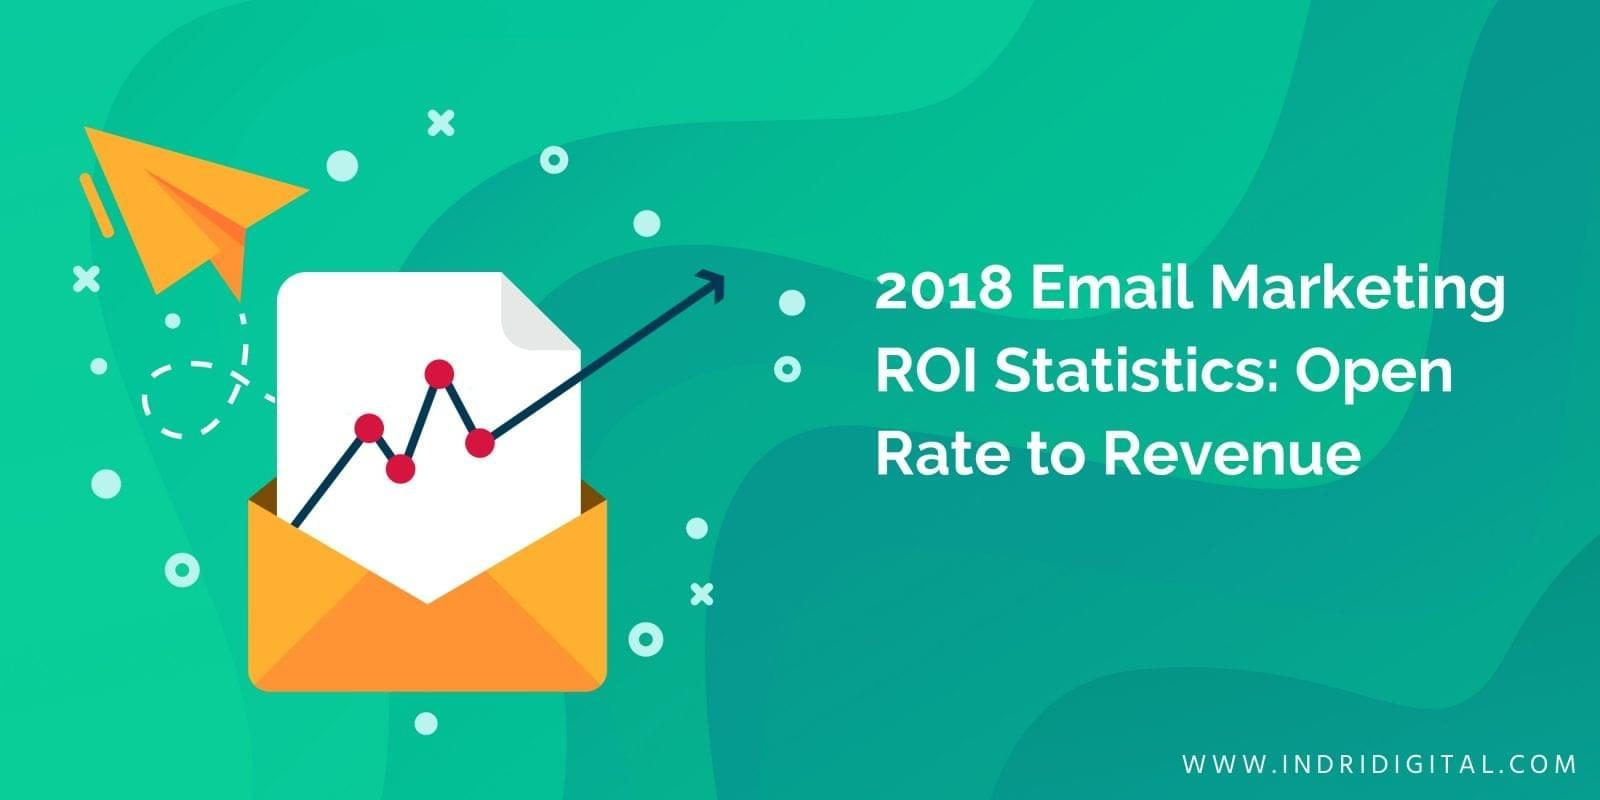 2018-Email-Marketing-ROI-Statistics